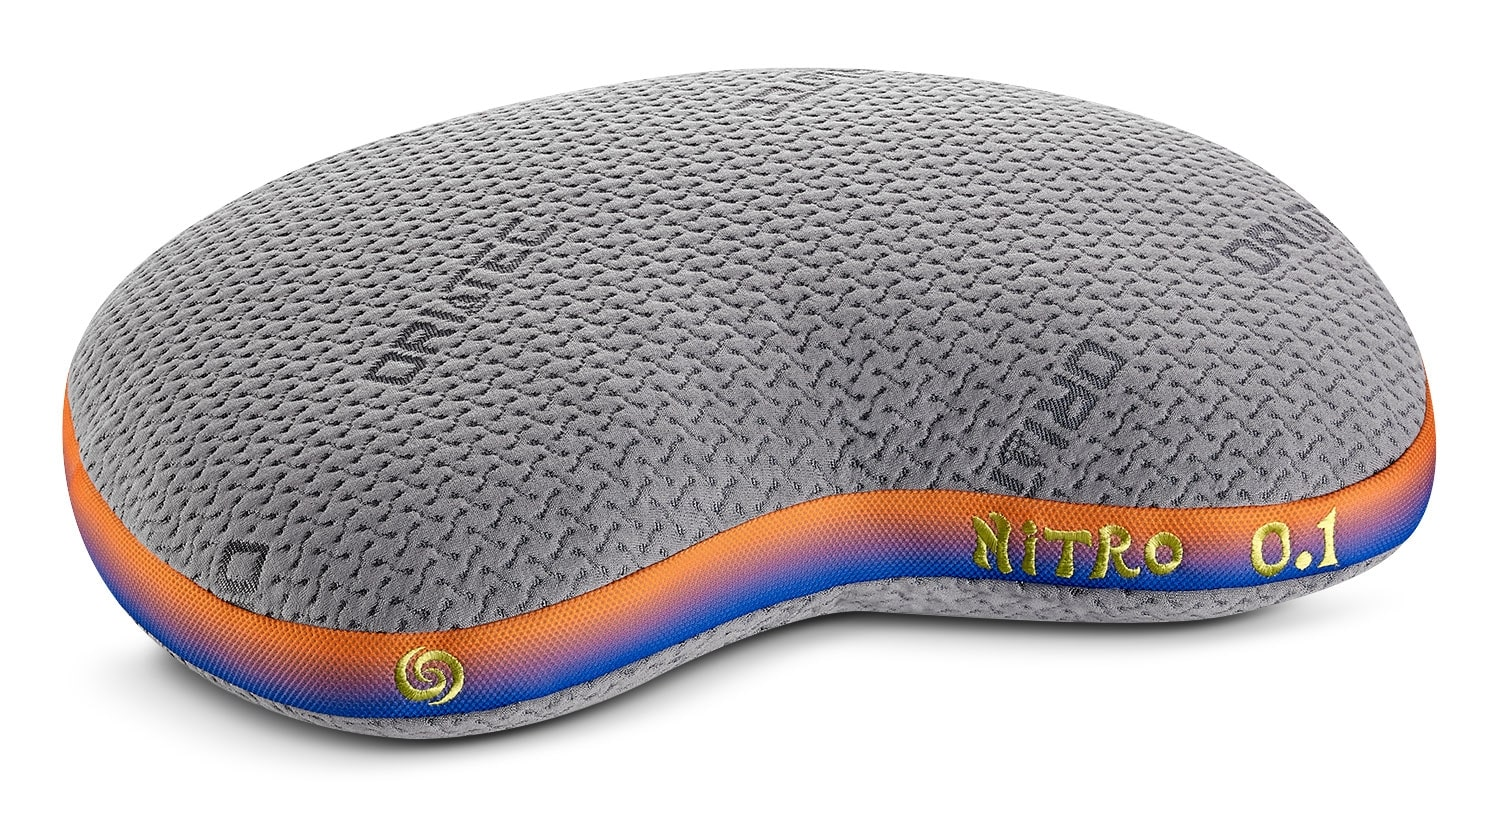 Mattresses and Bedding - Bedgear™ BG-X Kids Nitro 0.1 Performance Pillow – Medium Body Types